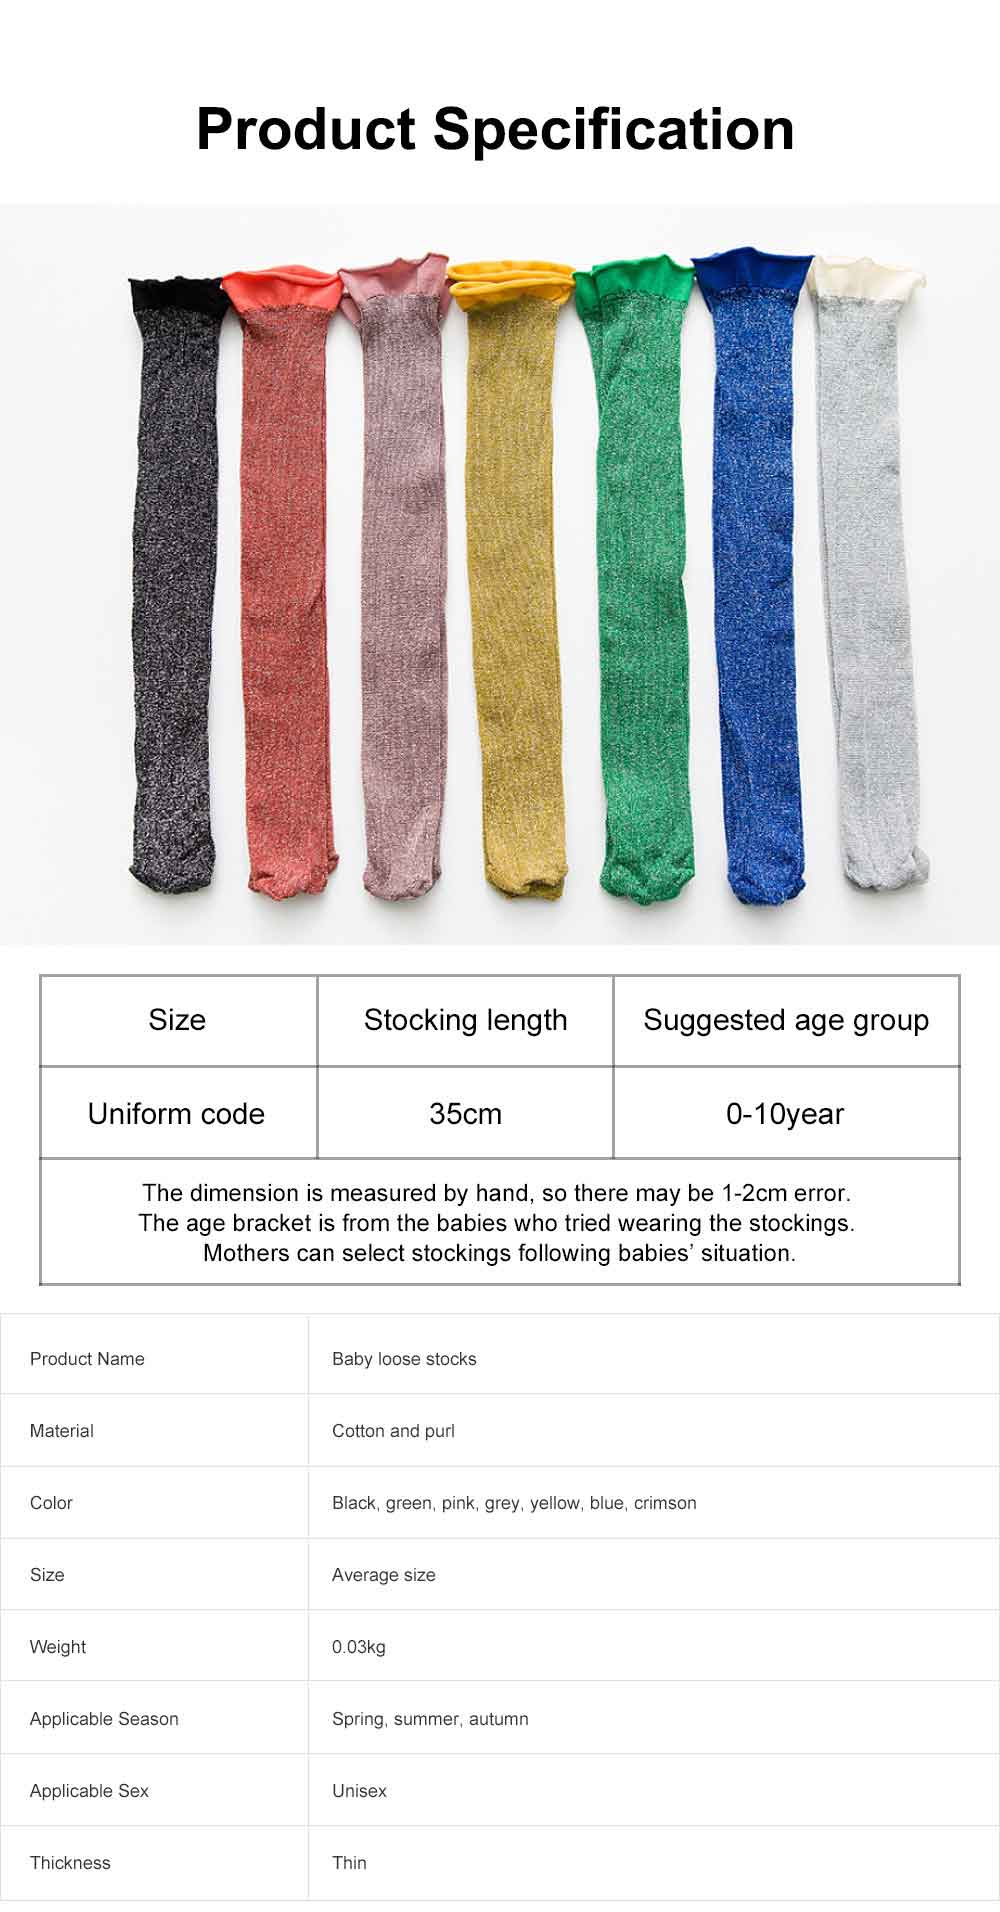 Pure Cotton Long Stockings for Kids Wear in Spring Summer, Purl Loose Socks for Babies, Thin Knee-socks Children's Stockings 6